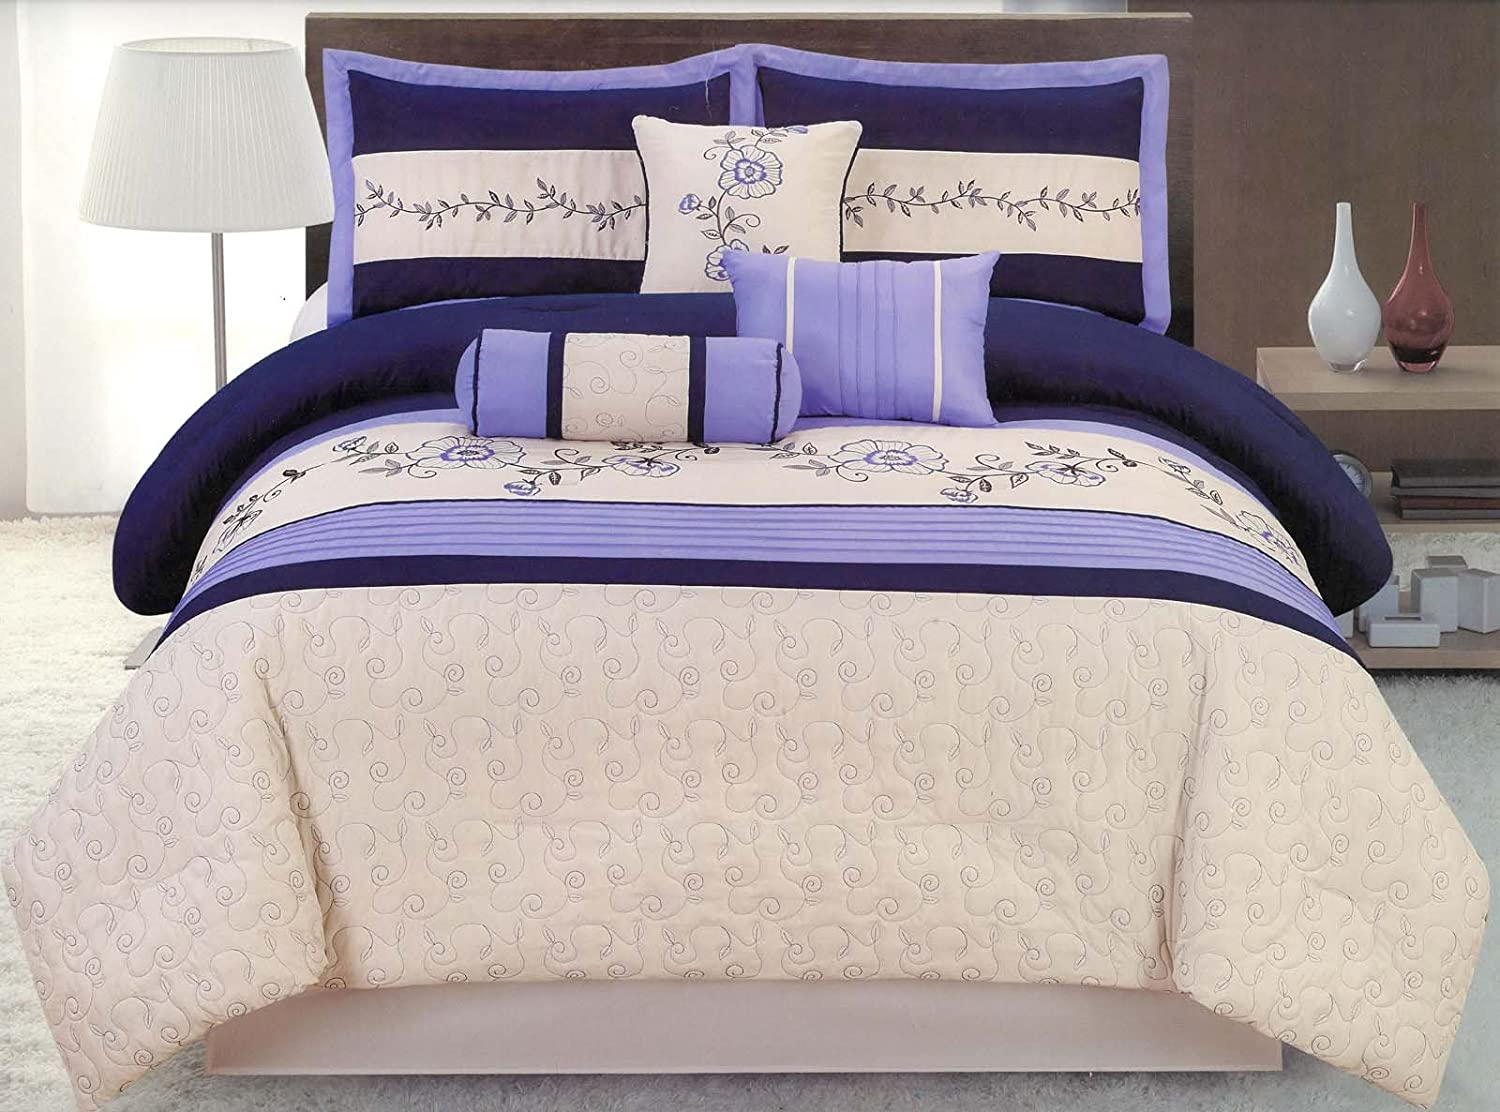 Jaba 7-Piece Embroidery Floral Comforter Set Queen Bed-In-A-Bag Lavender, Blue, Beige at Sears.com